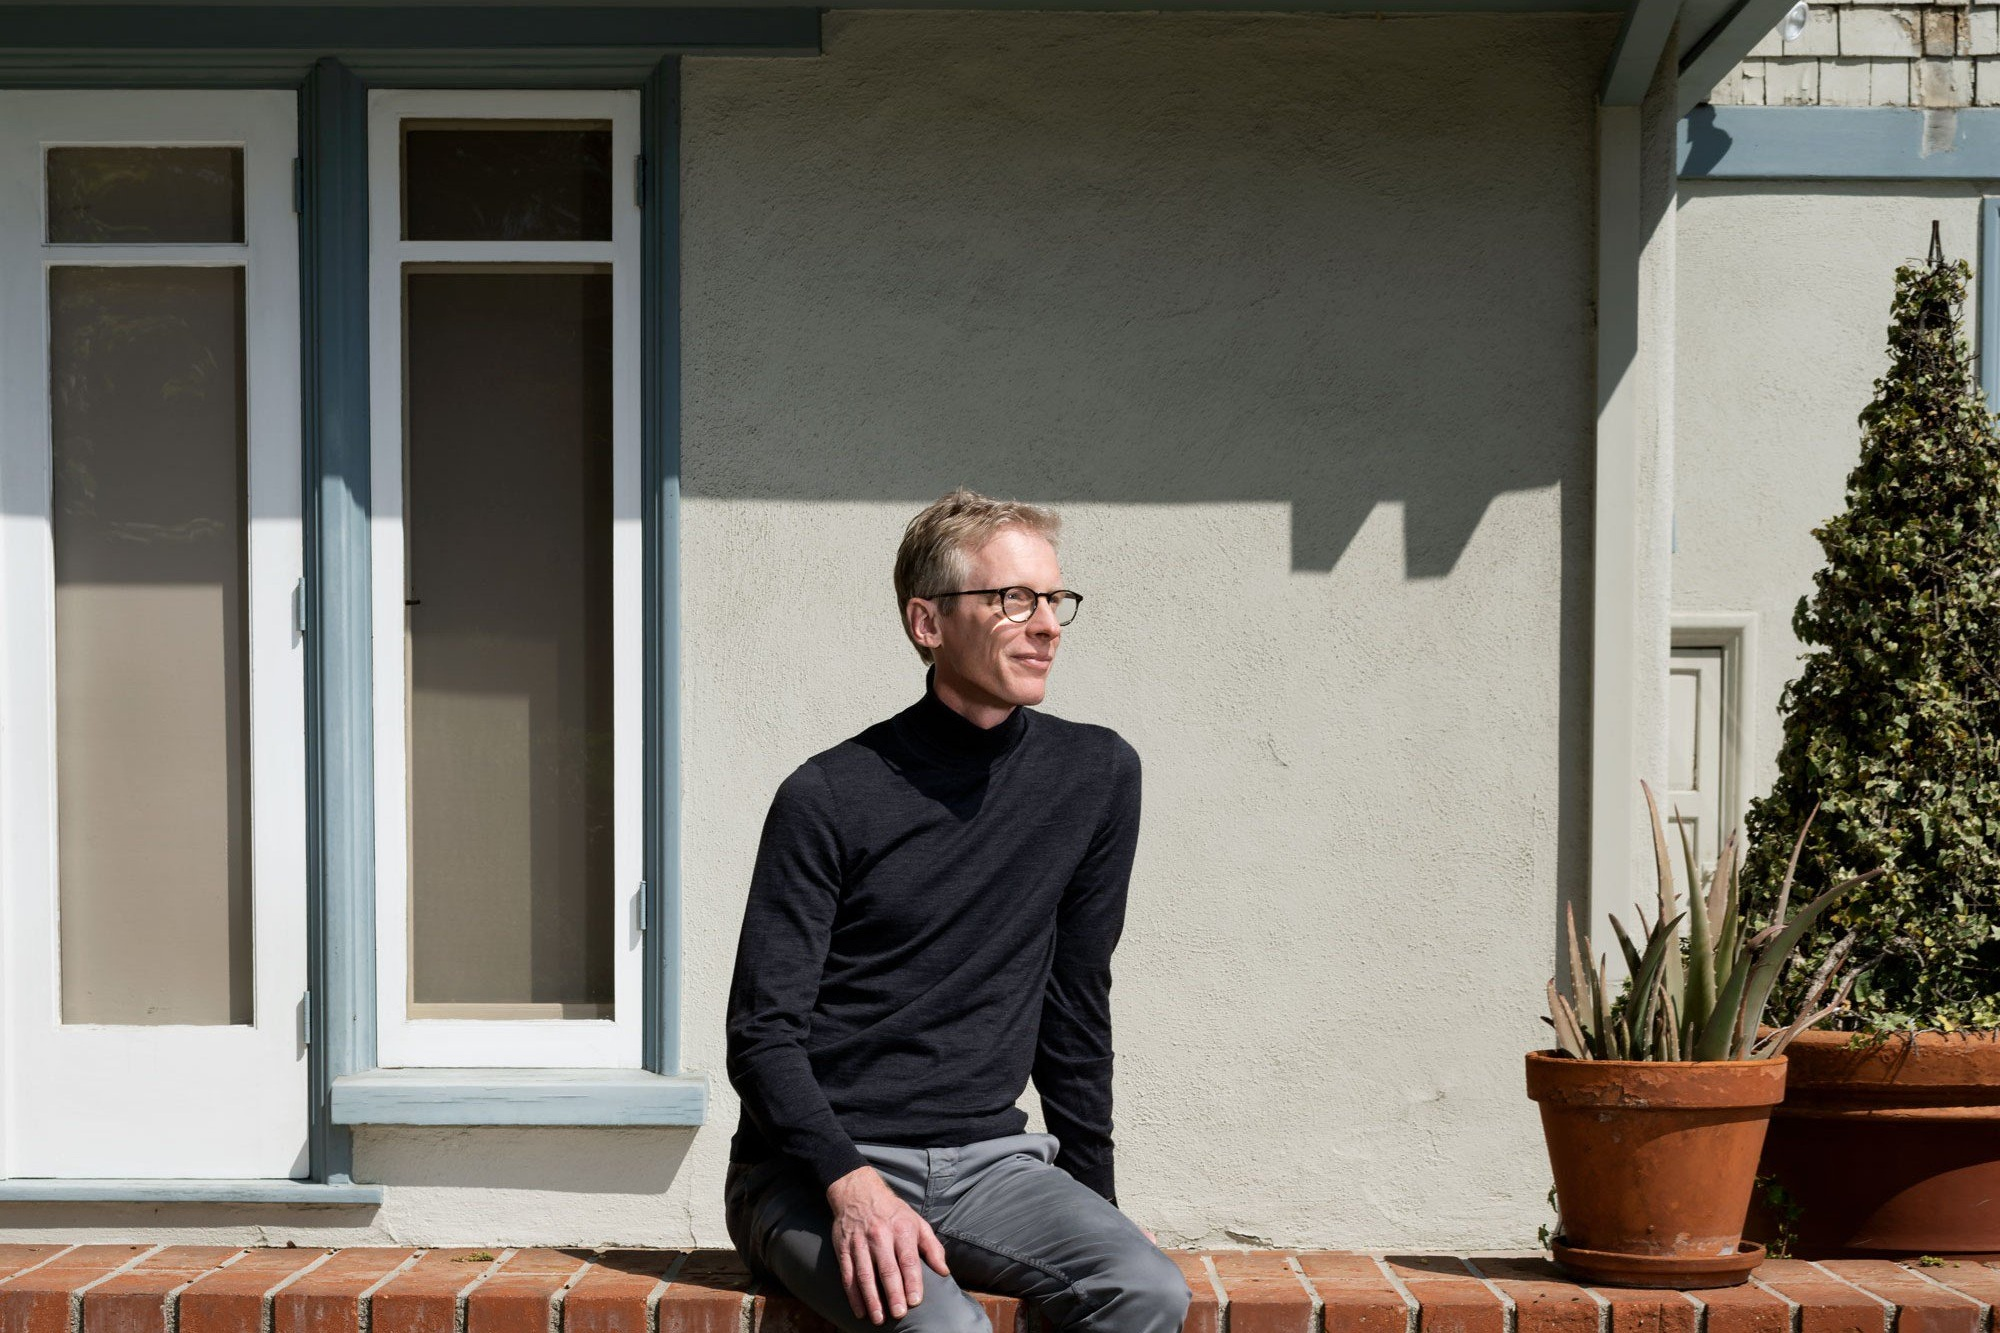 - A powerful new model could make global warming estimates less vague. I interviewed Caltech physicist Tapio Schneider about his mission to improve climate change predictions. For MIT Technology Review.